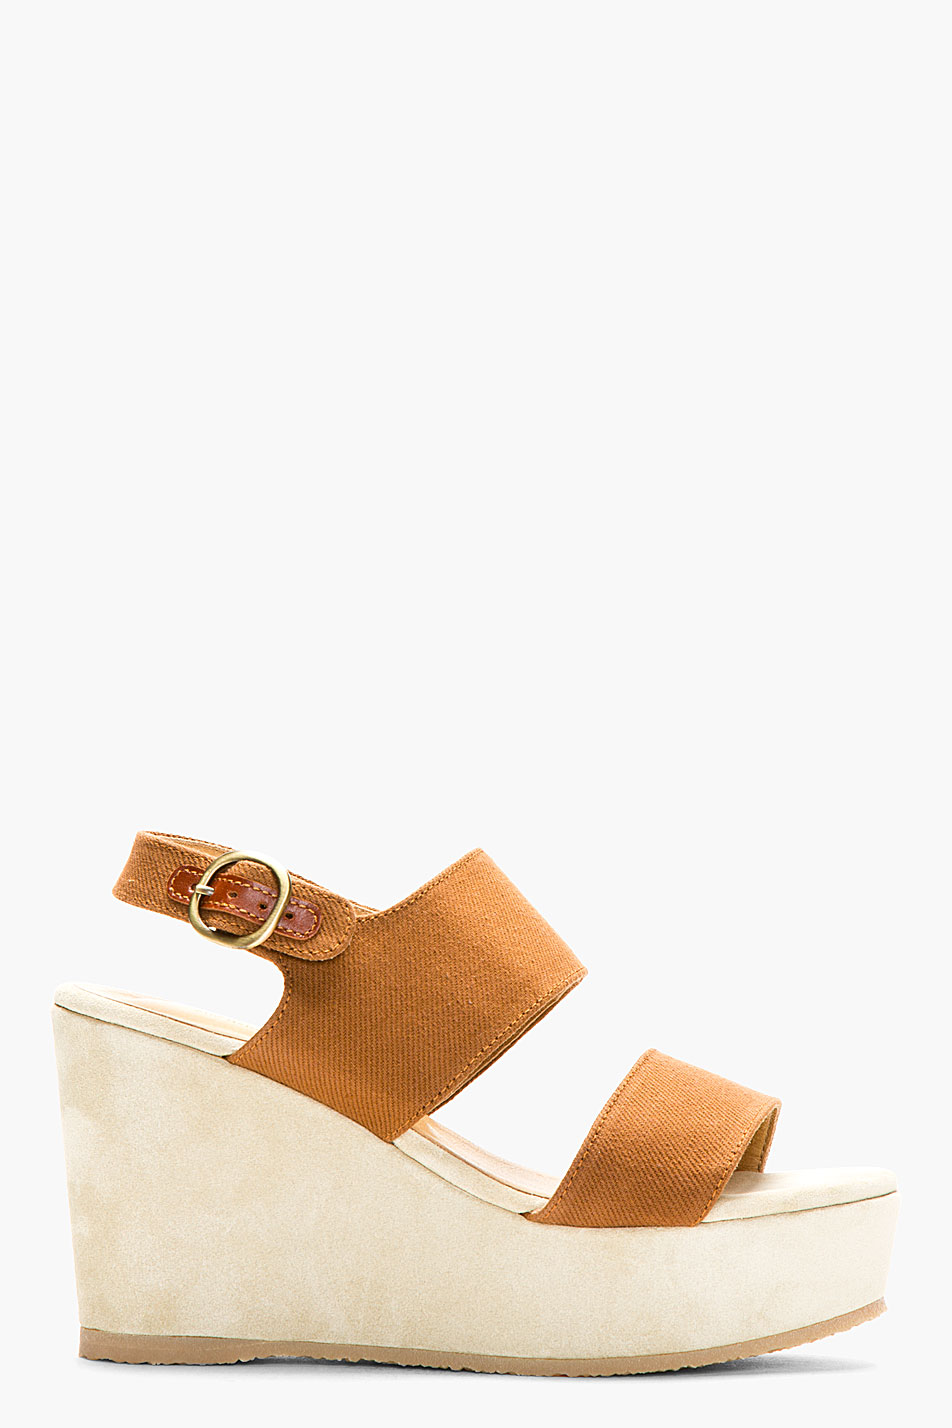 A.p.c. chestnut brown canvas and suede wedge sandal